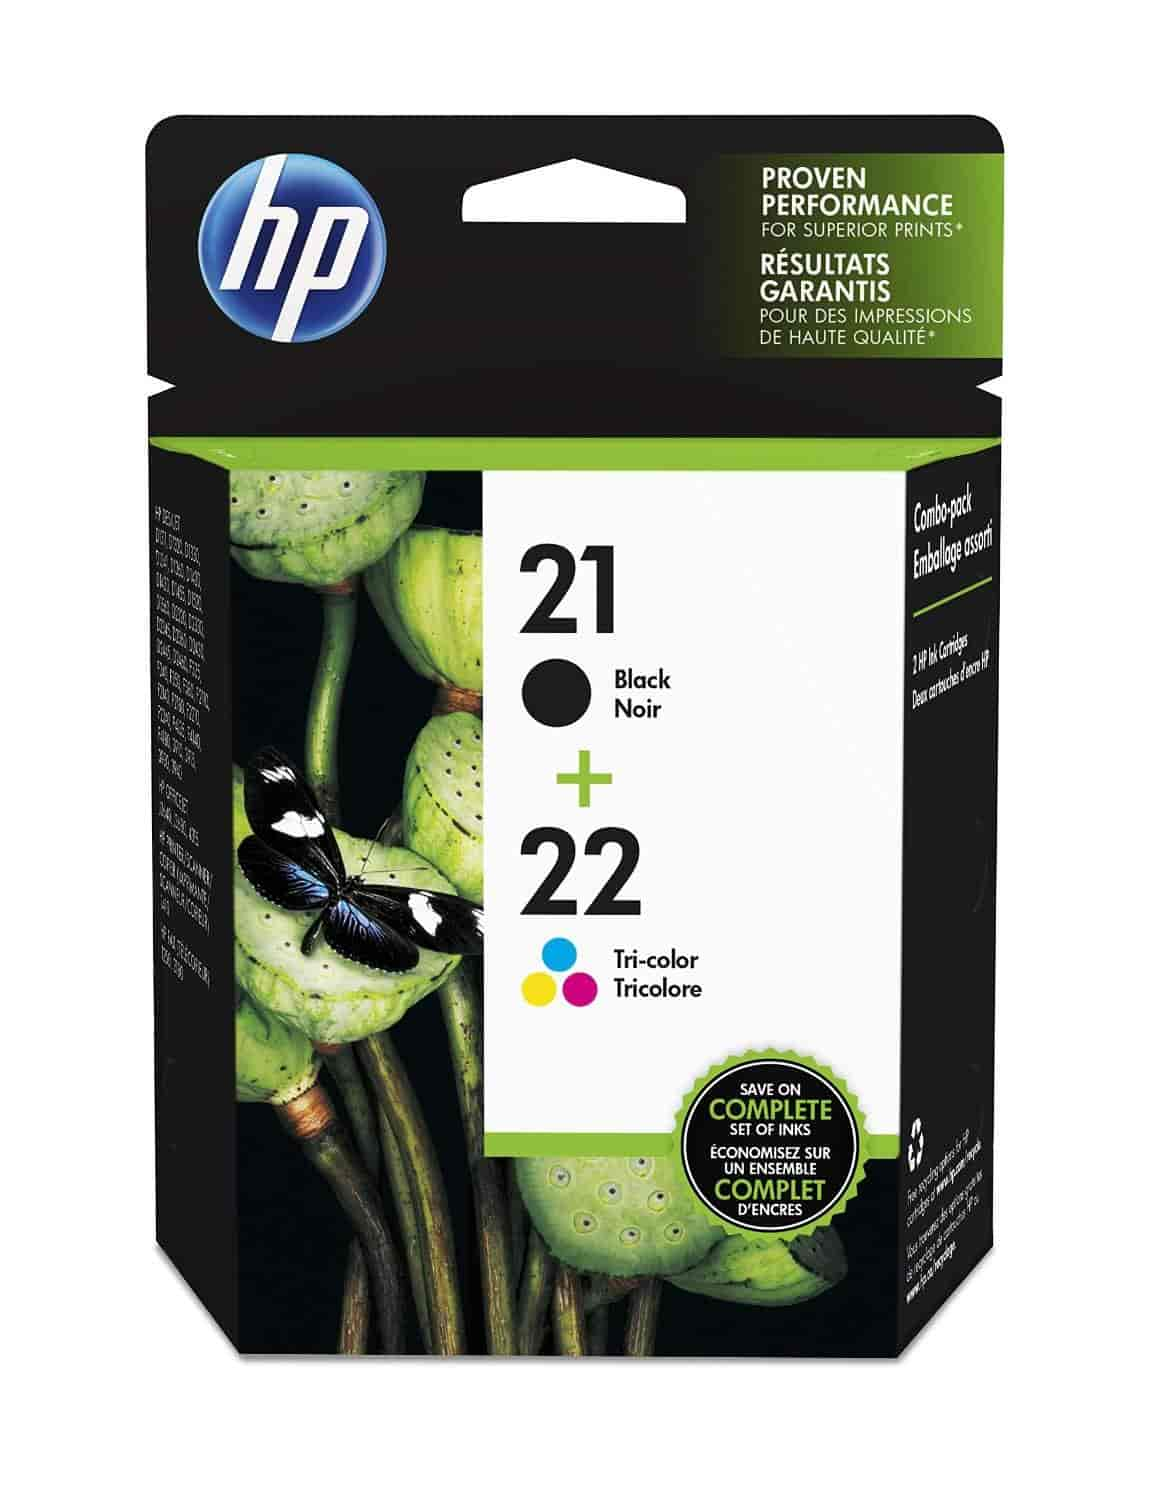 Fish aquarium just dial - Hp 21 22 Ink Cartridge Combo Pack